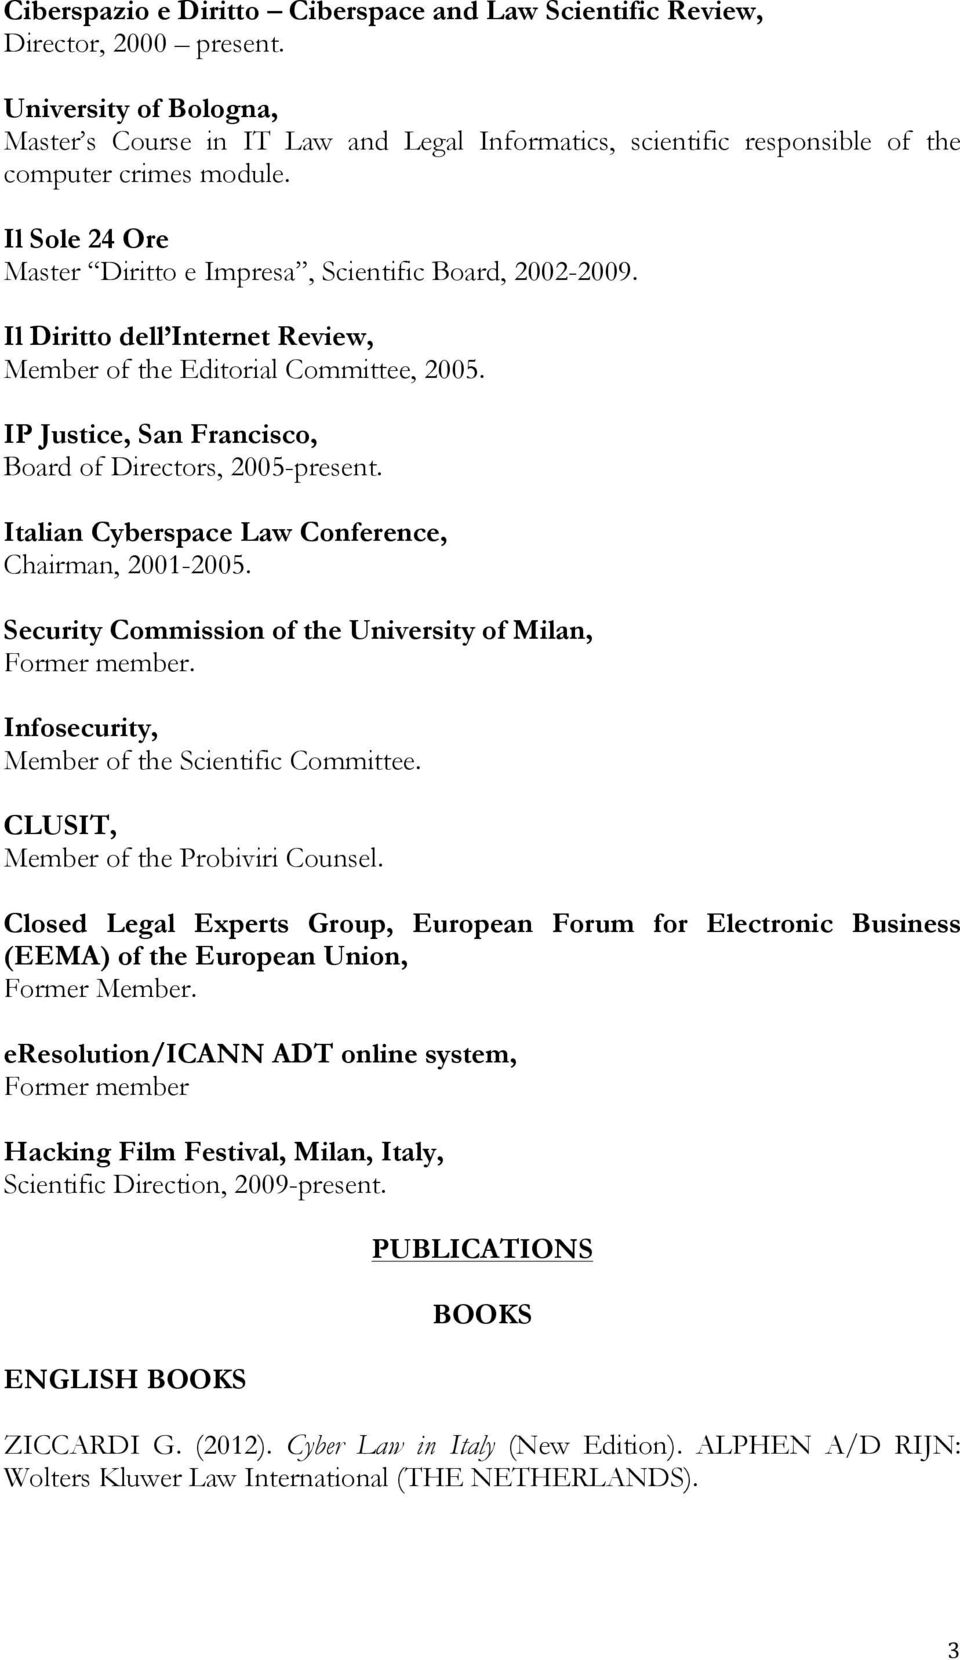 Il Diritto dell Internet Review, Member of the Editorial Committee, 2005. IP Justice, San Francisco, Board of Directors, 2005-present. Italian Cyberspace Law Conference, Chairman, 2001-2005.